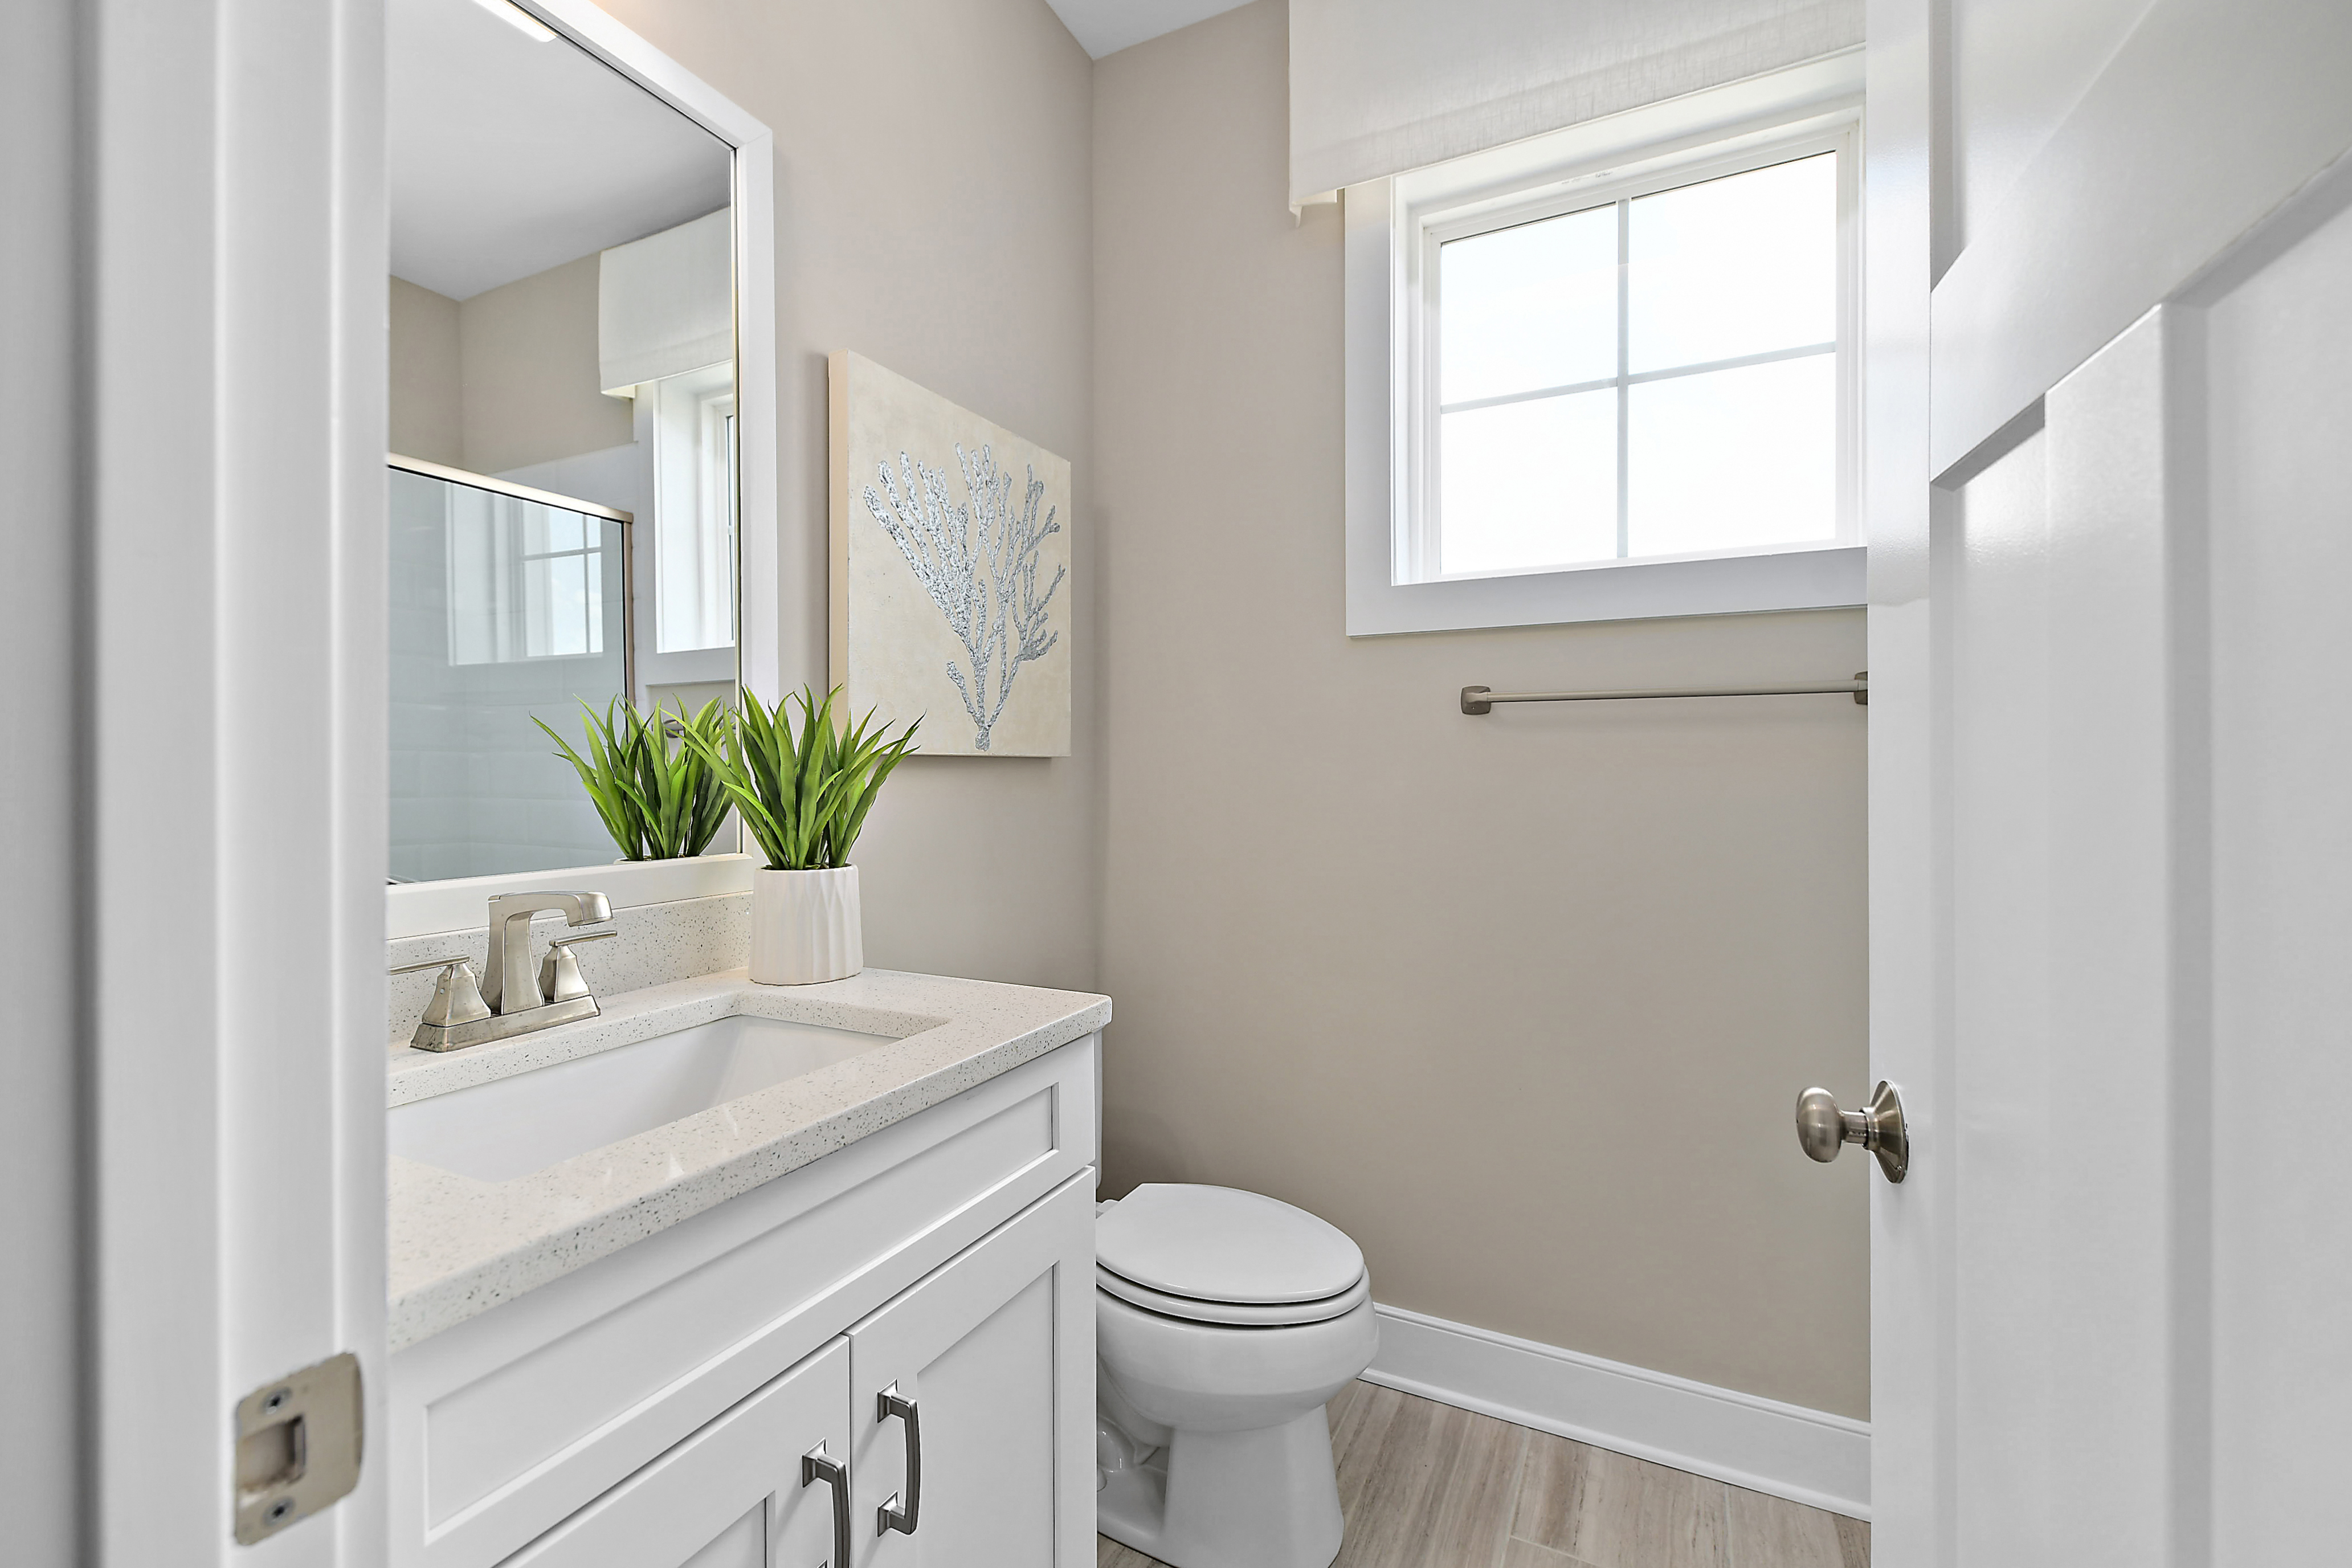 Main Level Bathroom with White Vanity, Quartz Counter and Wood Floors